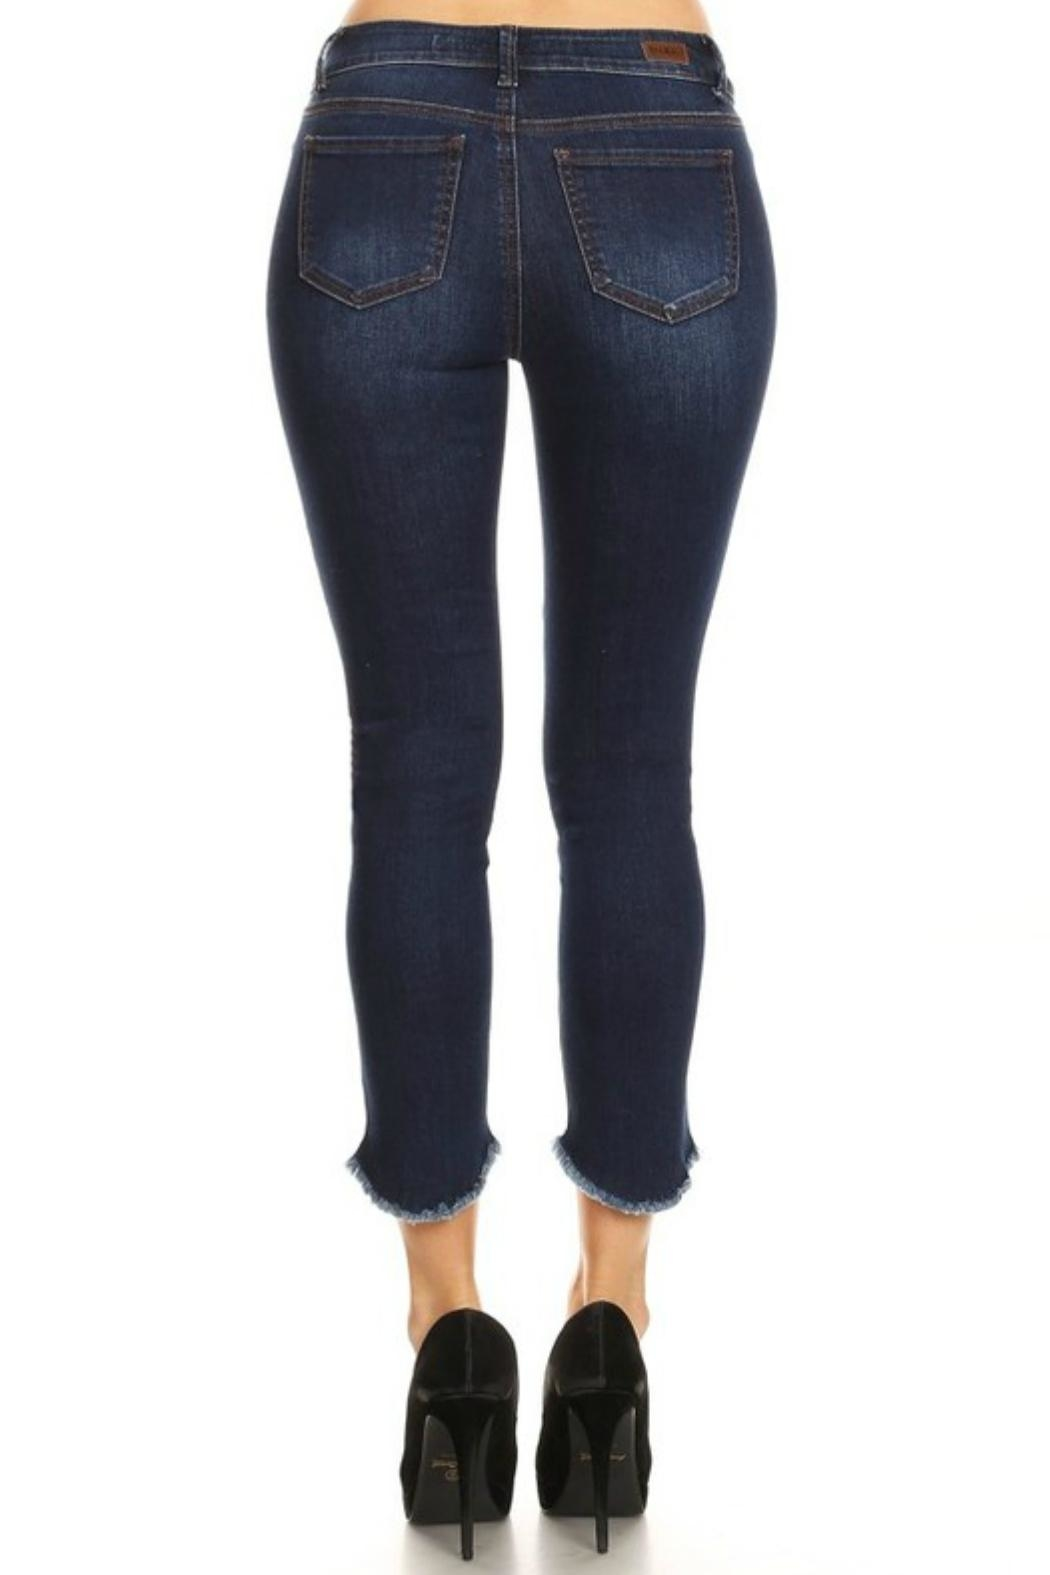 e859773559846 ENJean Raw Hem Skinny from Texas by POE and Arrows — Shoptiques